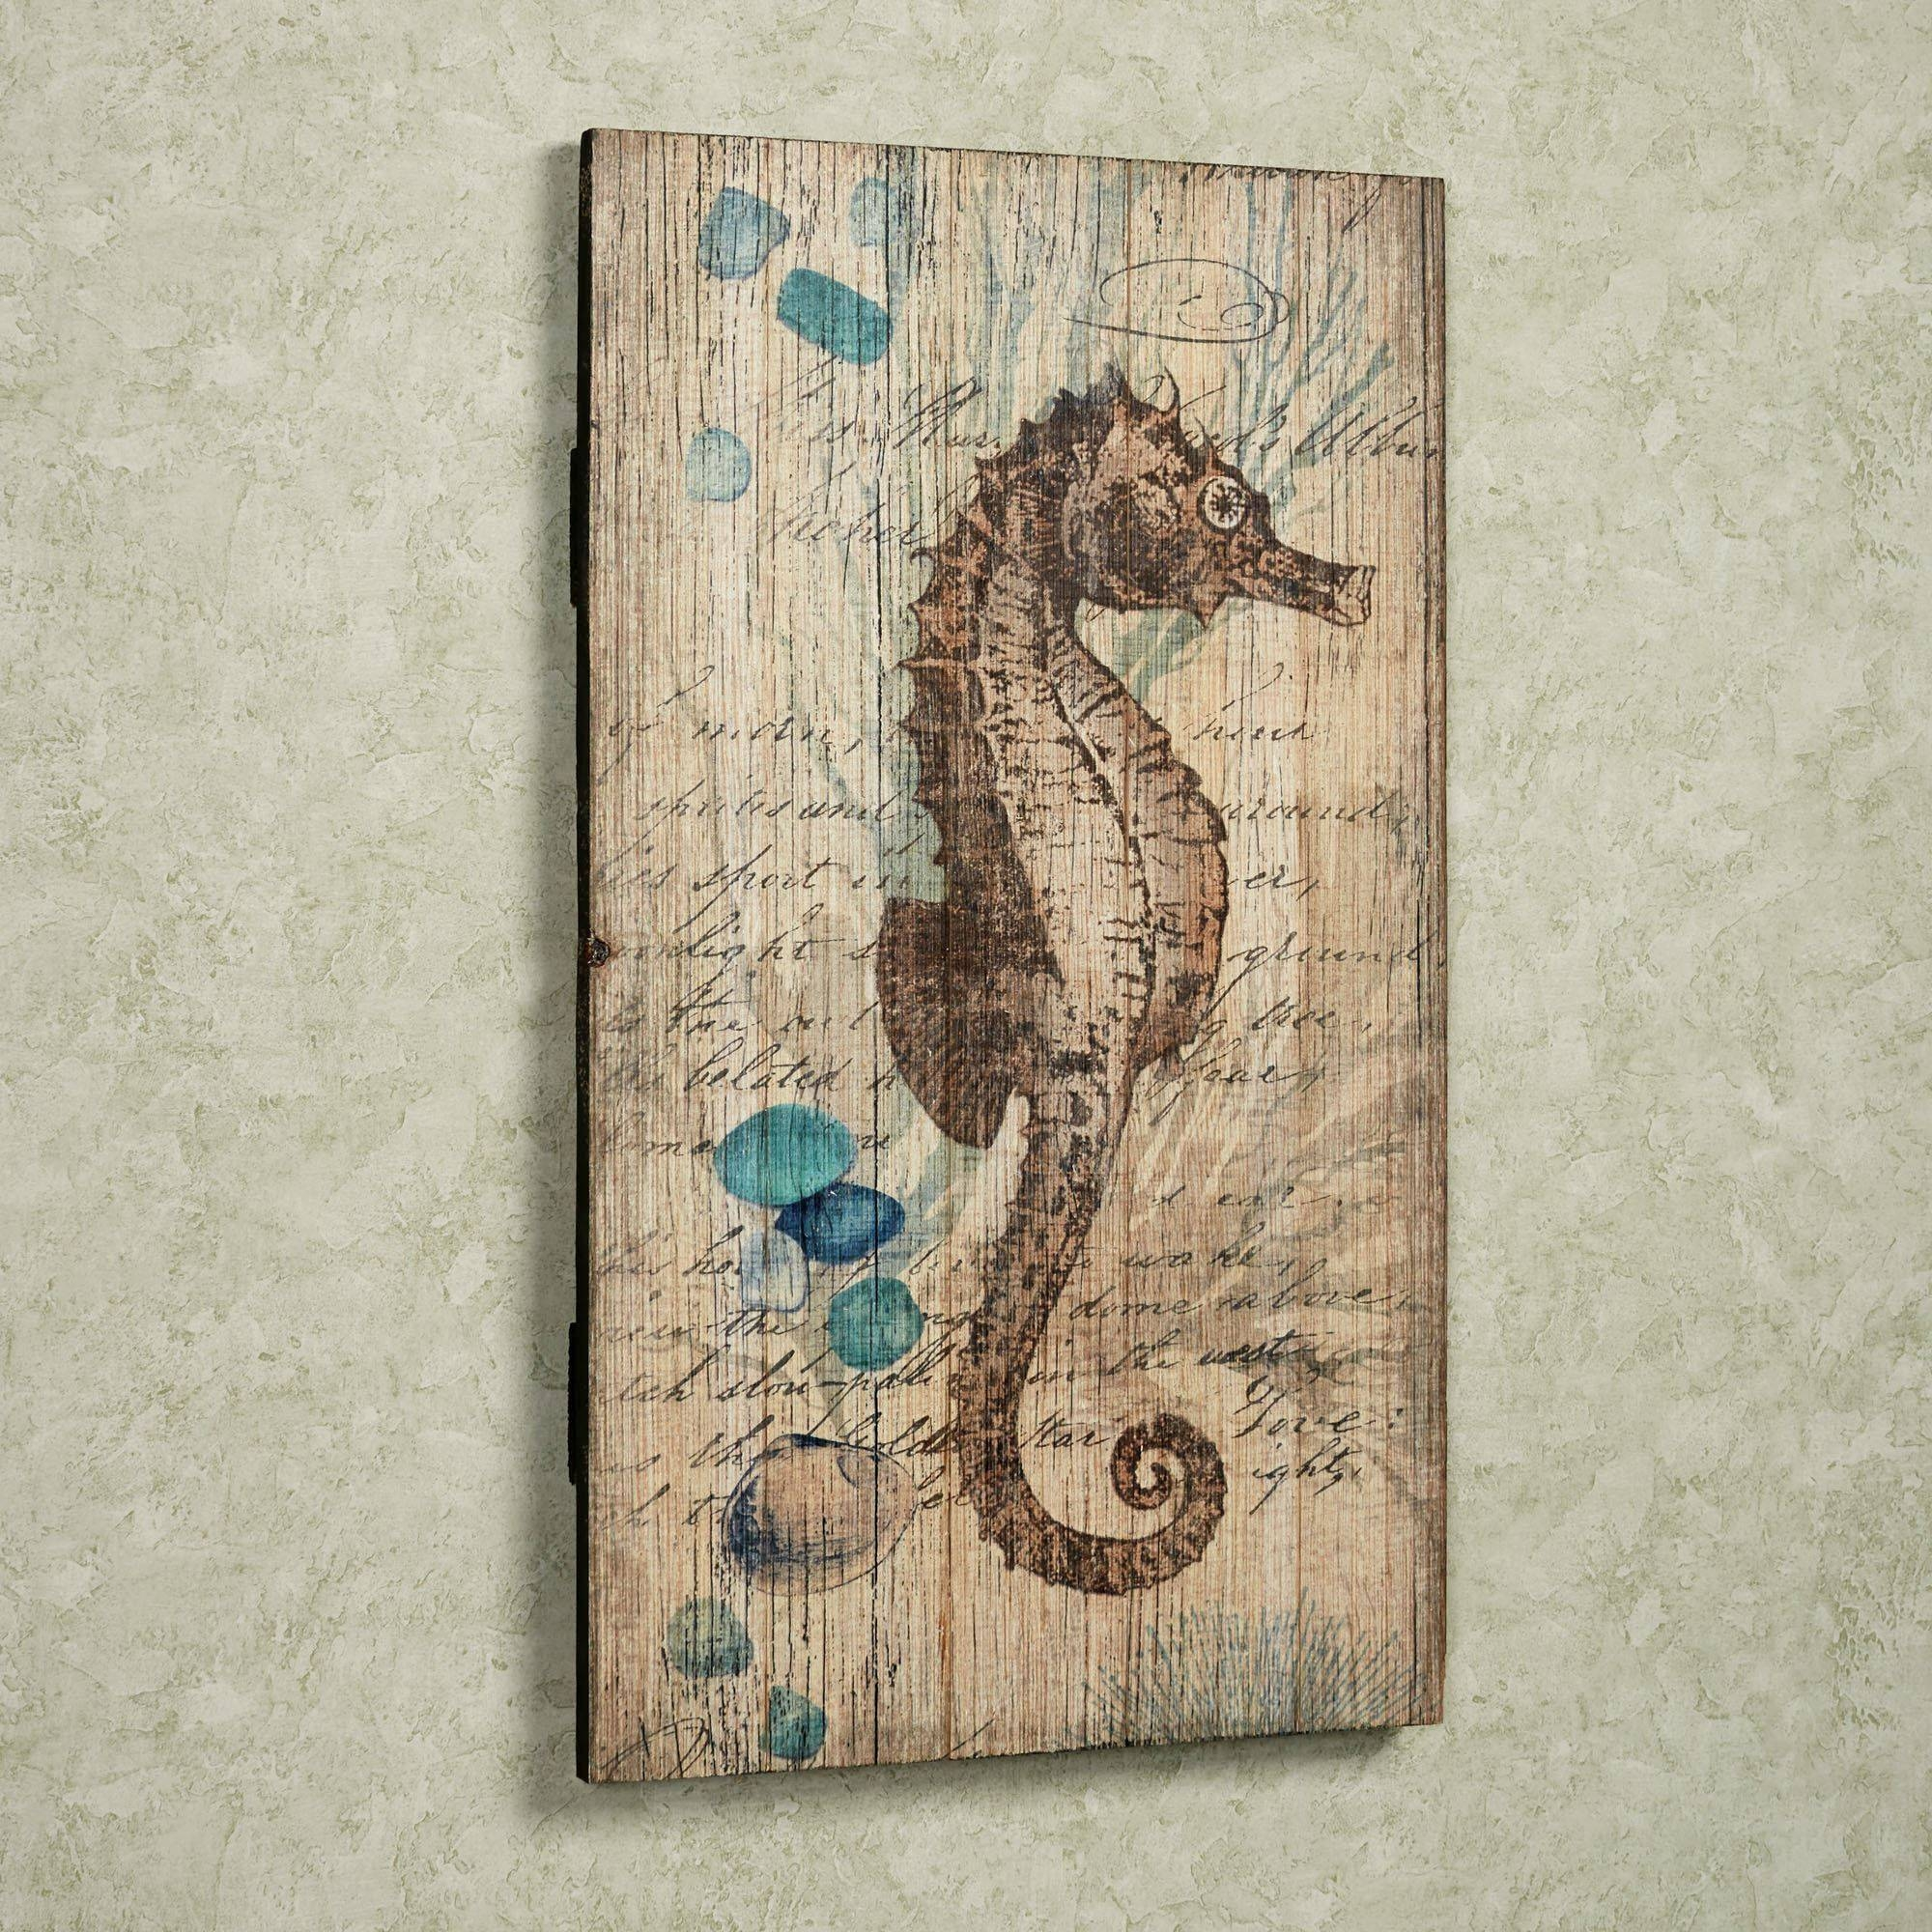 Seahorse Vintage Sign Wall Art Regarding Best And Newest Seahorse Metal Wall Art (View 18 of 20)